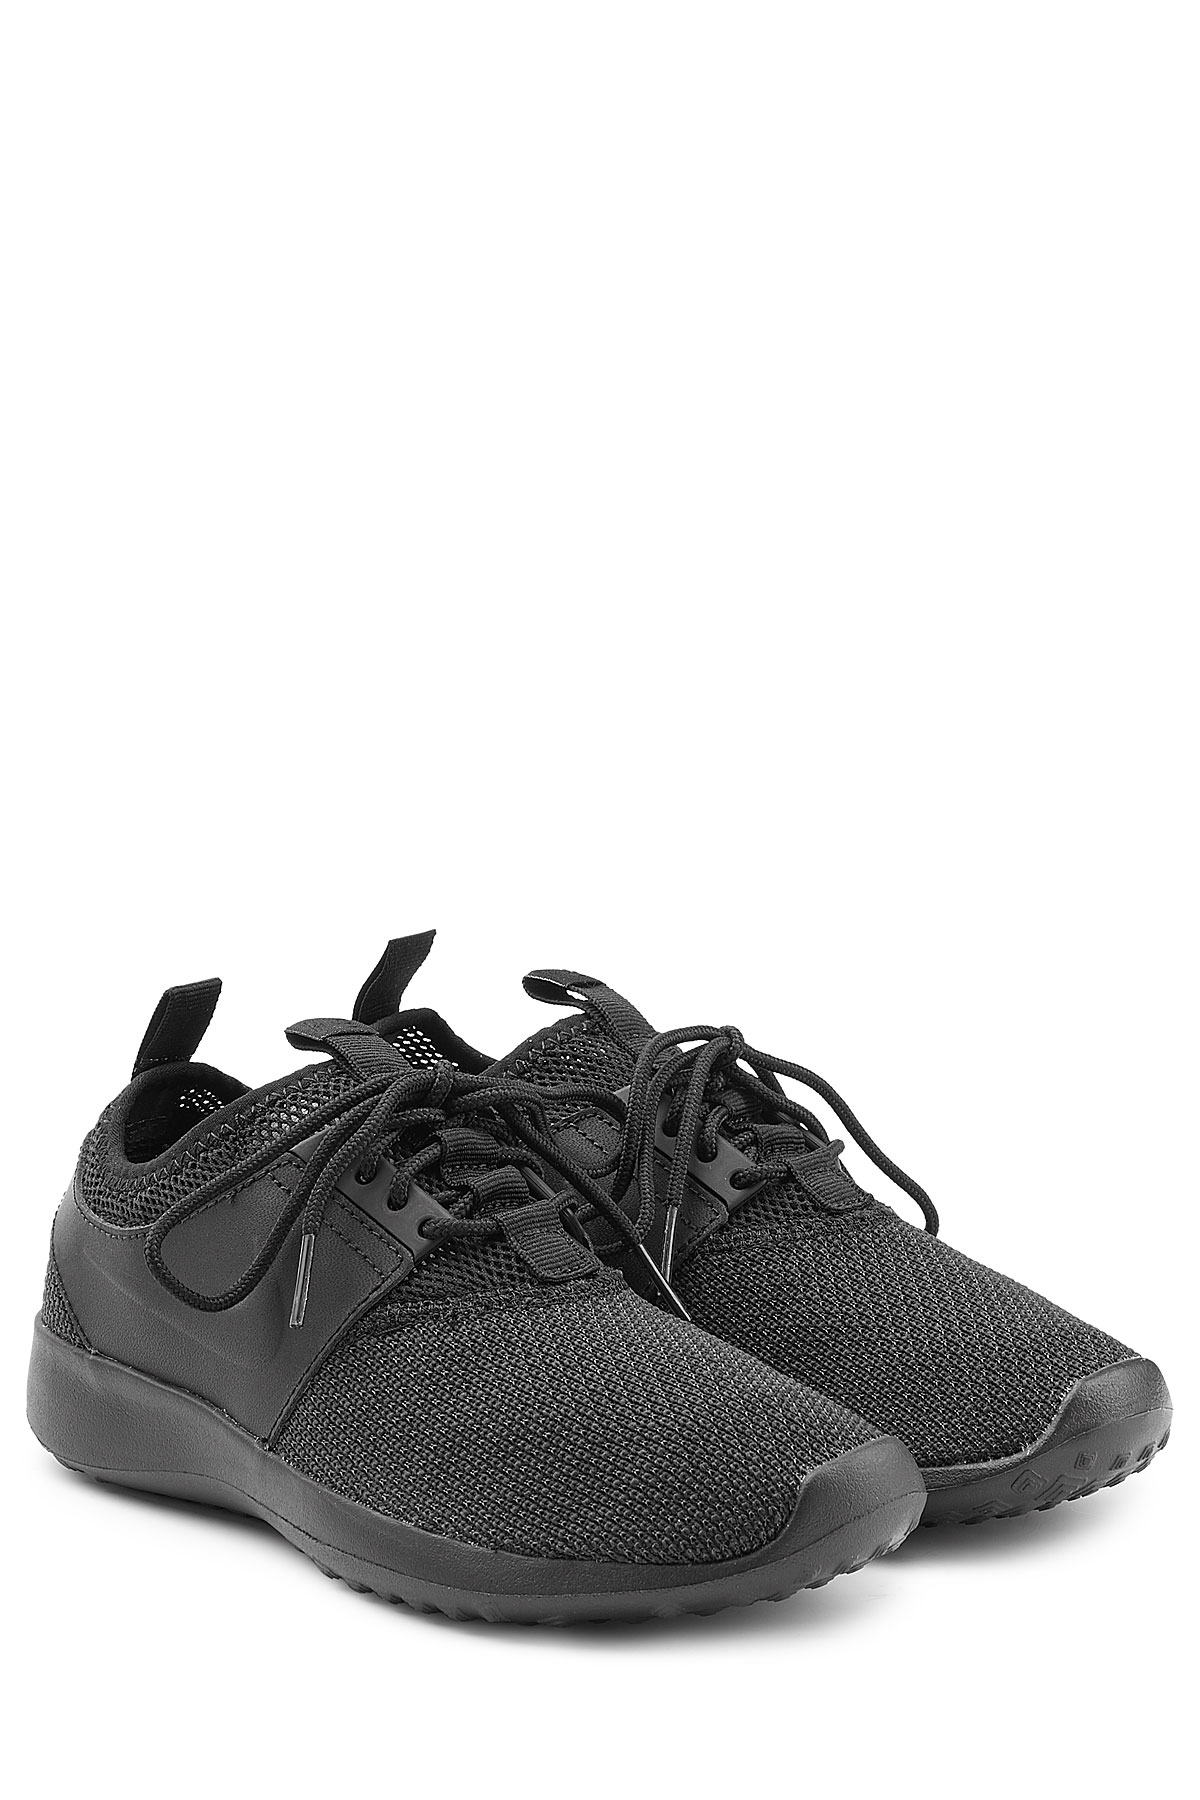 Nike Leather And Mesh Sneakers - Black in Black - Lyst